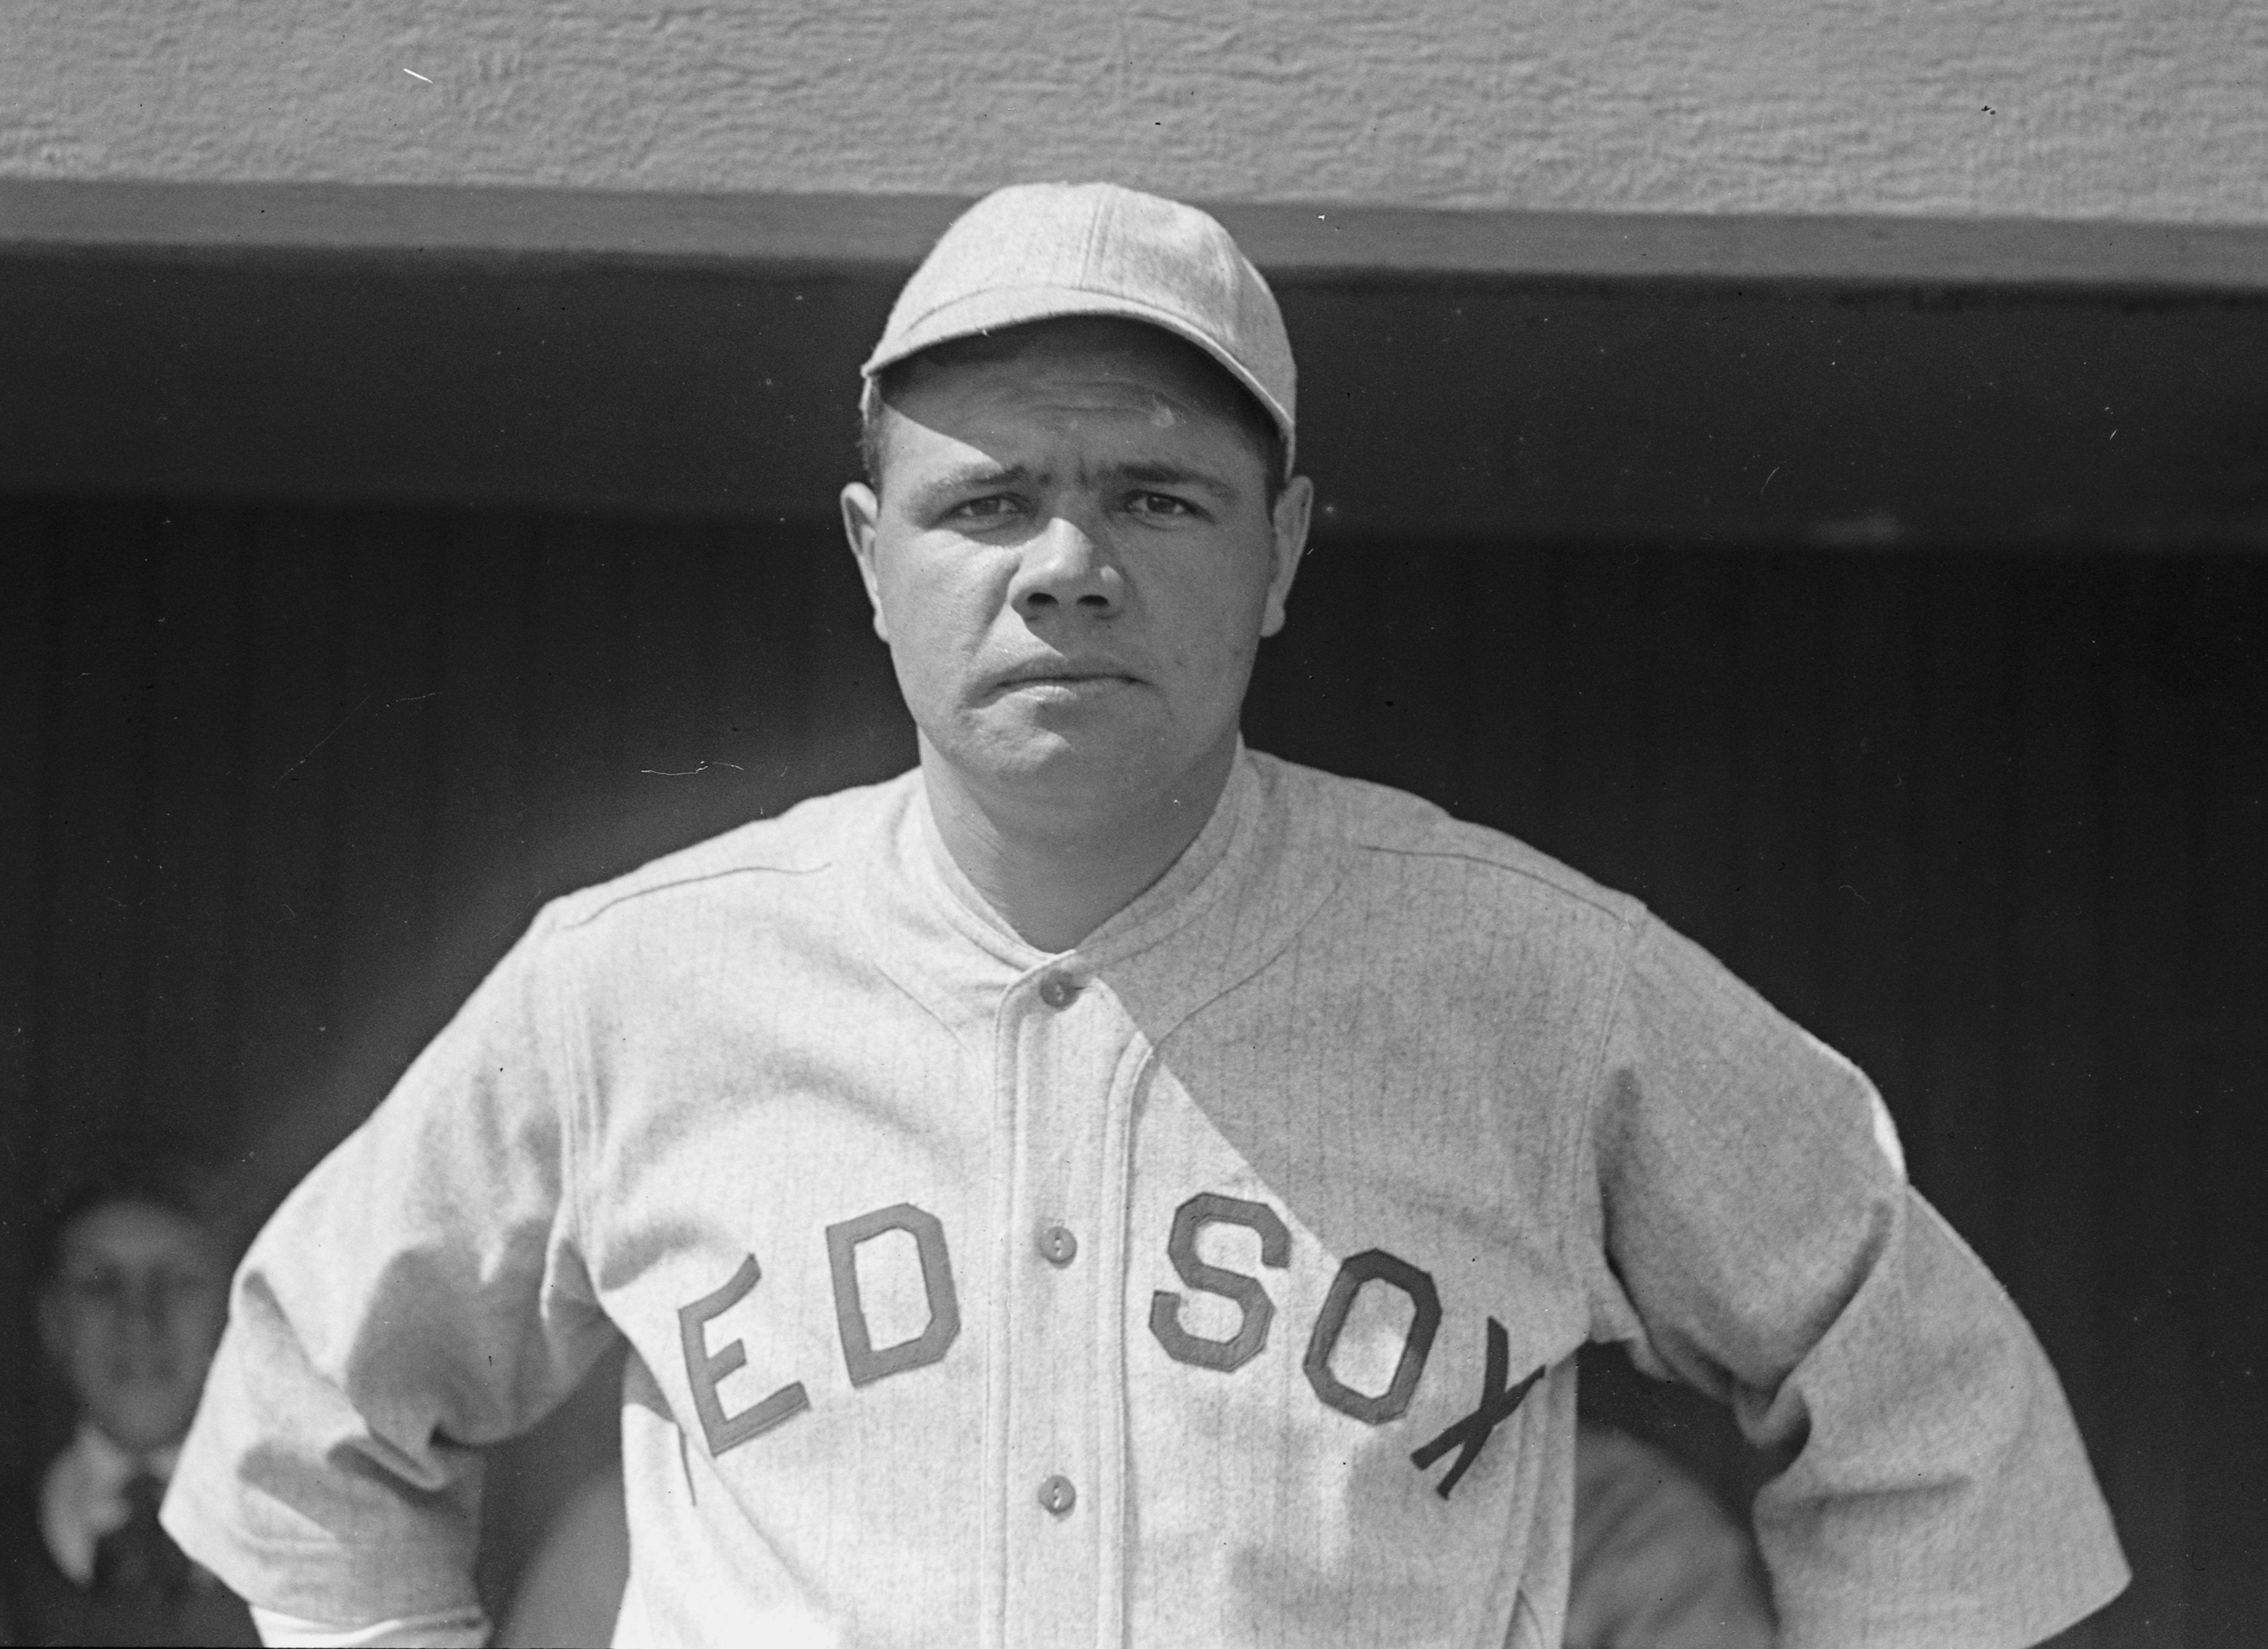 Babe Ruth inspiration